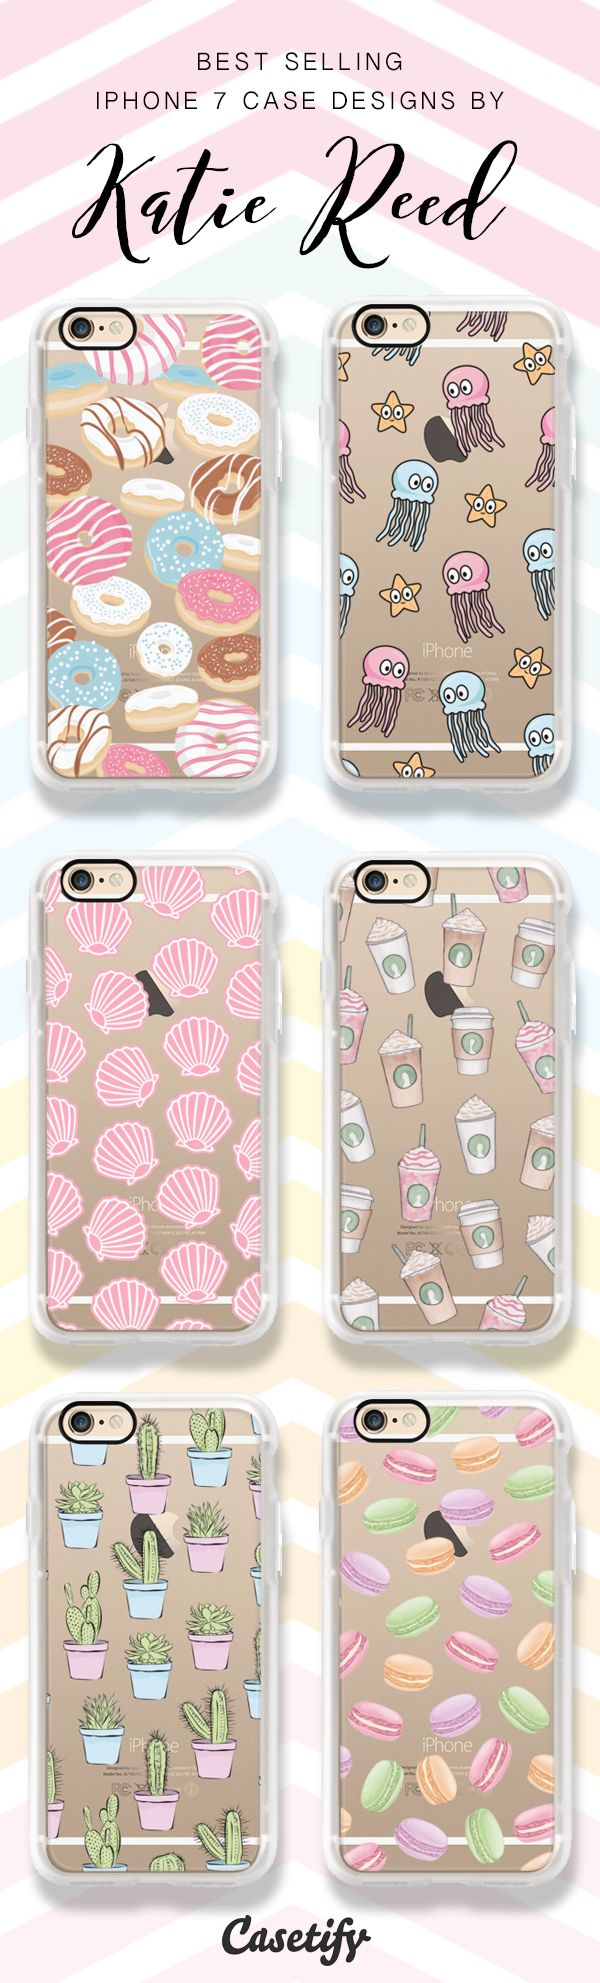 Check these best selling iPhone 7 case by Katie Reed! Shop them all here >> https://www.casetify.com/en_US/katscases/collection?order=popular